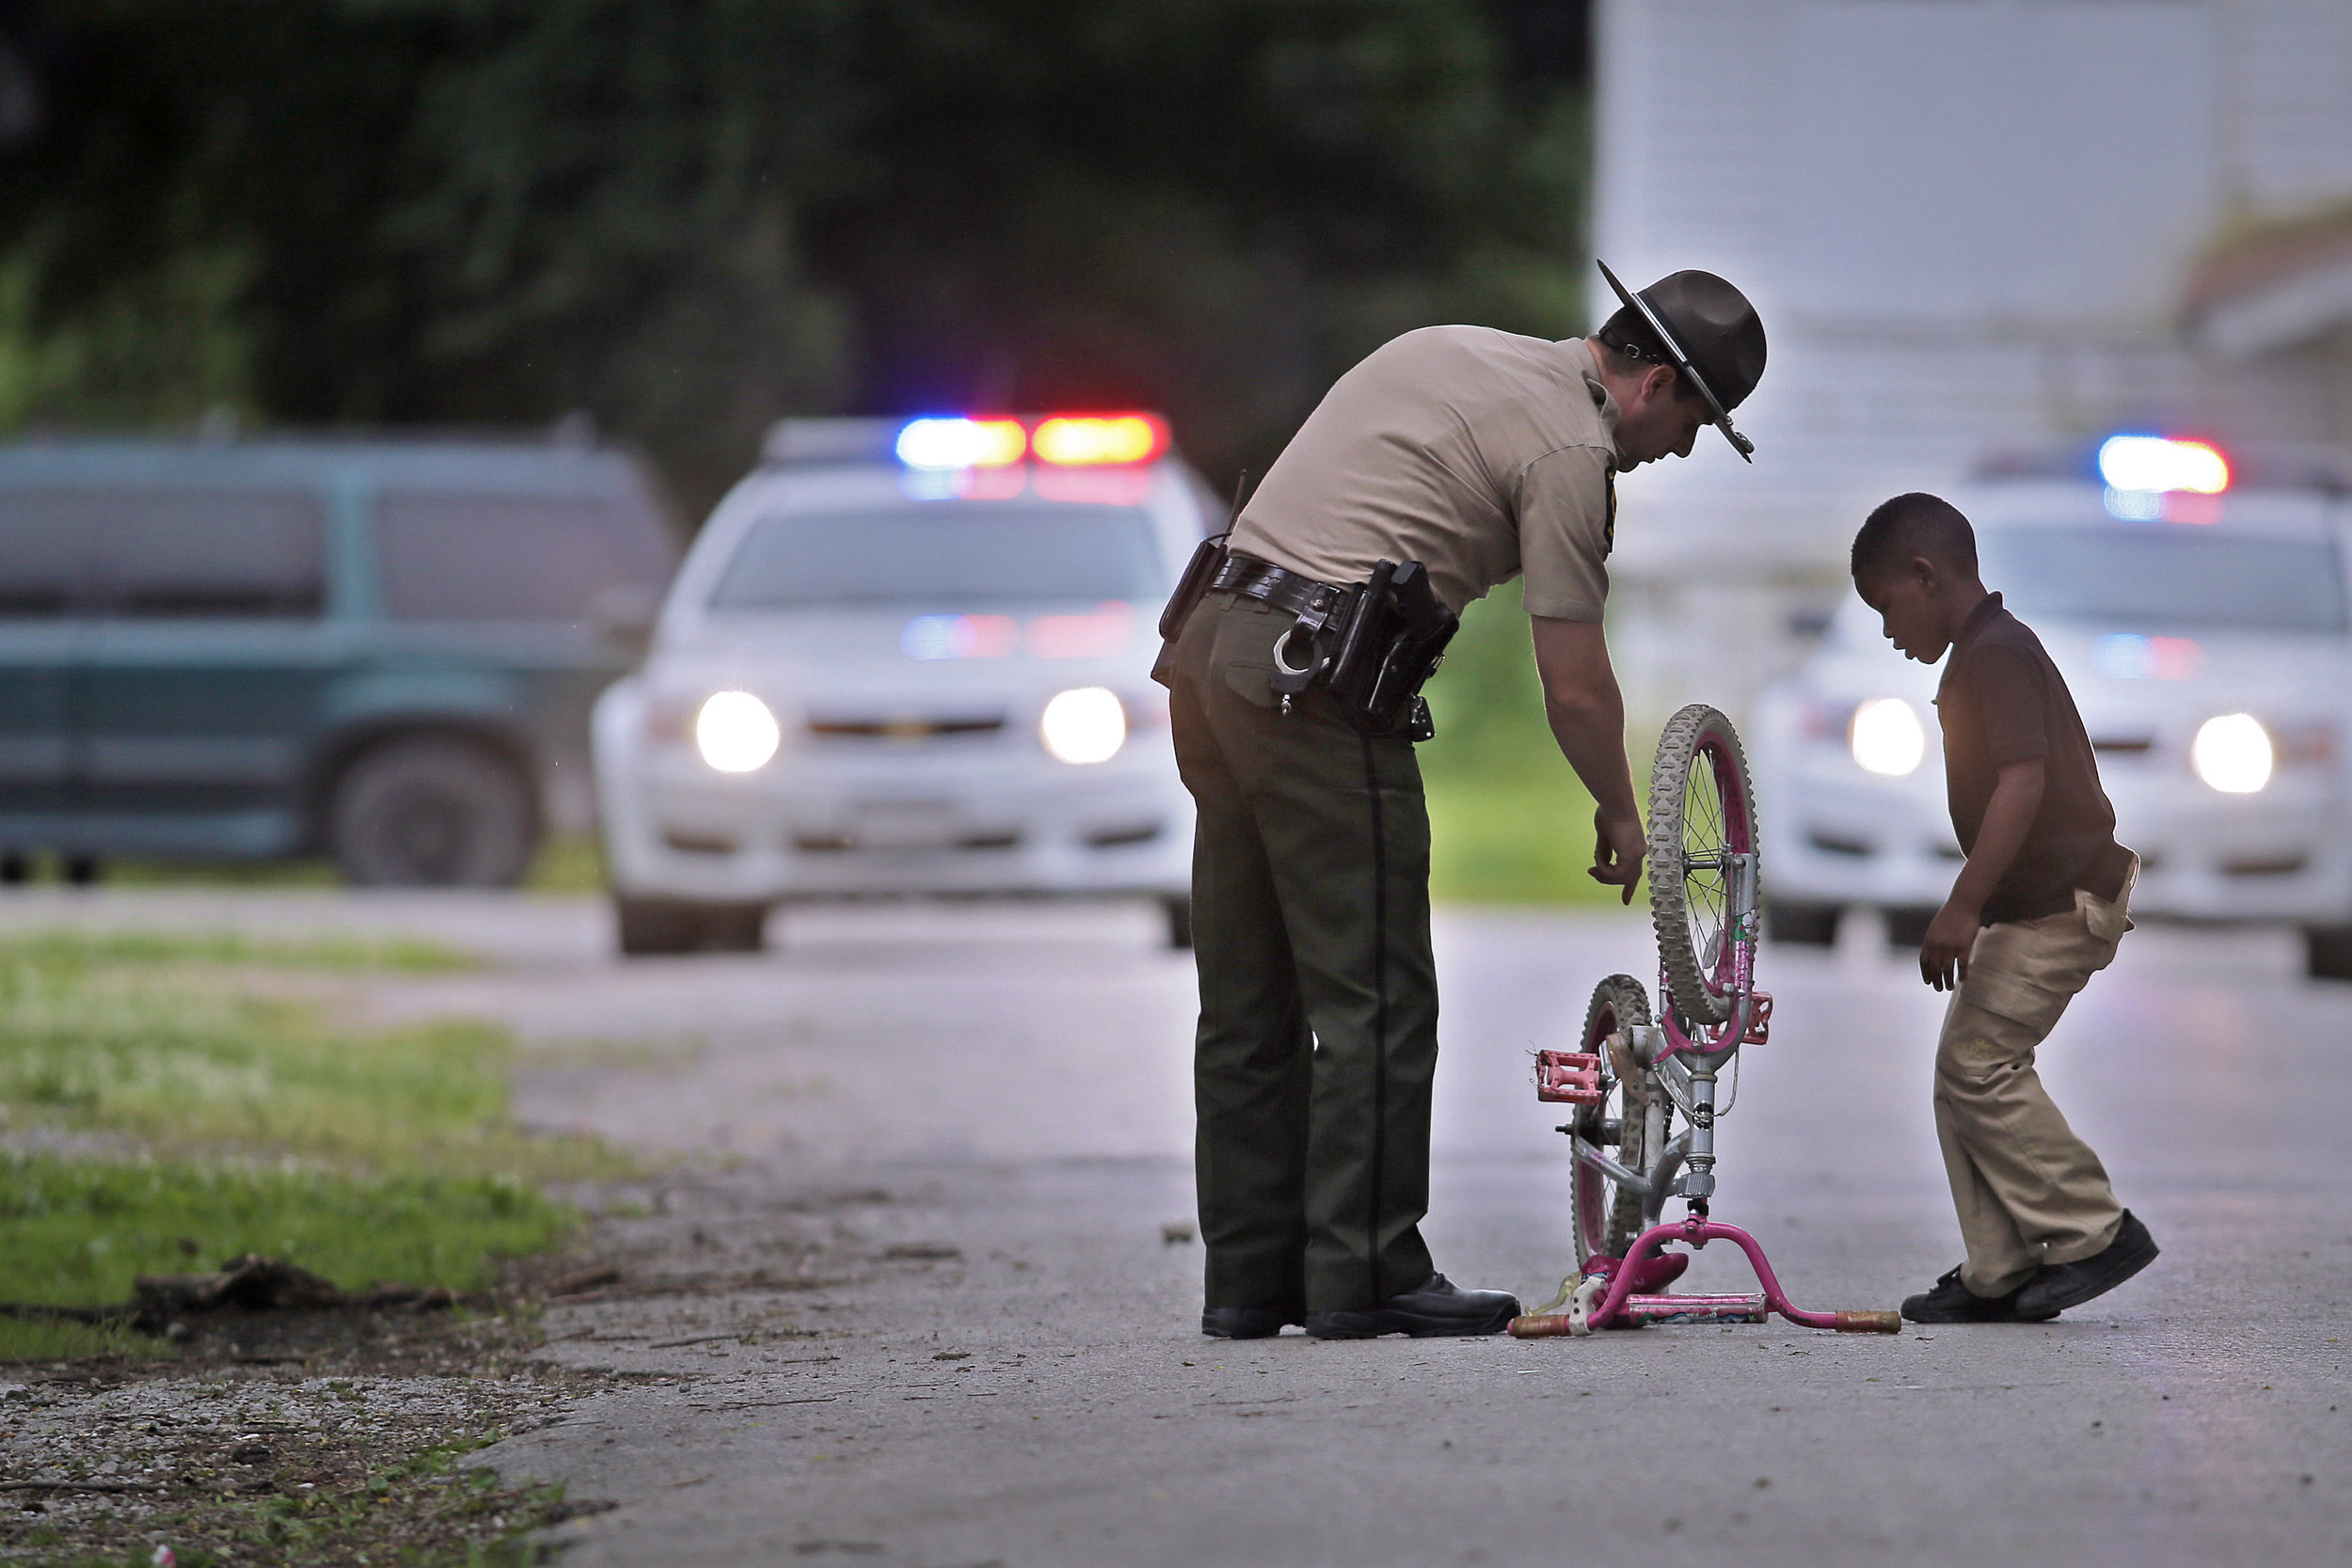 Illinios State Trooper Jeff Karns assists 6-year-old Arion Harrison with his bike as police investigate the scene of an officer-involved shooting in East St. Louis near Washington Park on Thursday, May 26, 2016. The man who police believe shot and killed a 21-year-old woman in a downtown St. Louis carjacking was shot and killed by officers in the Metro East Thursday afternoon, police said.